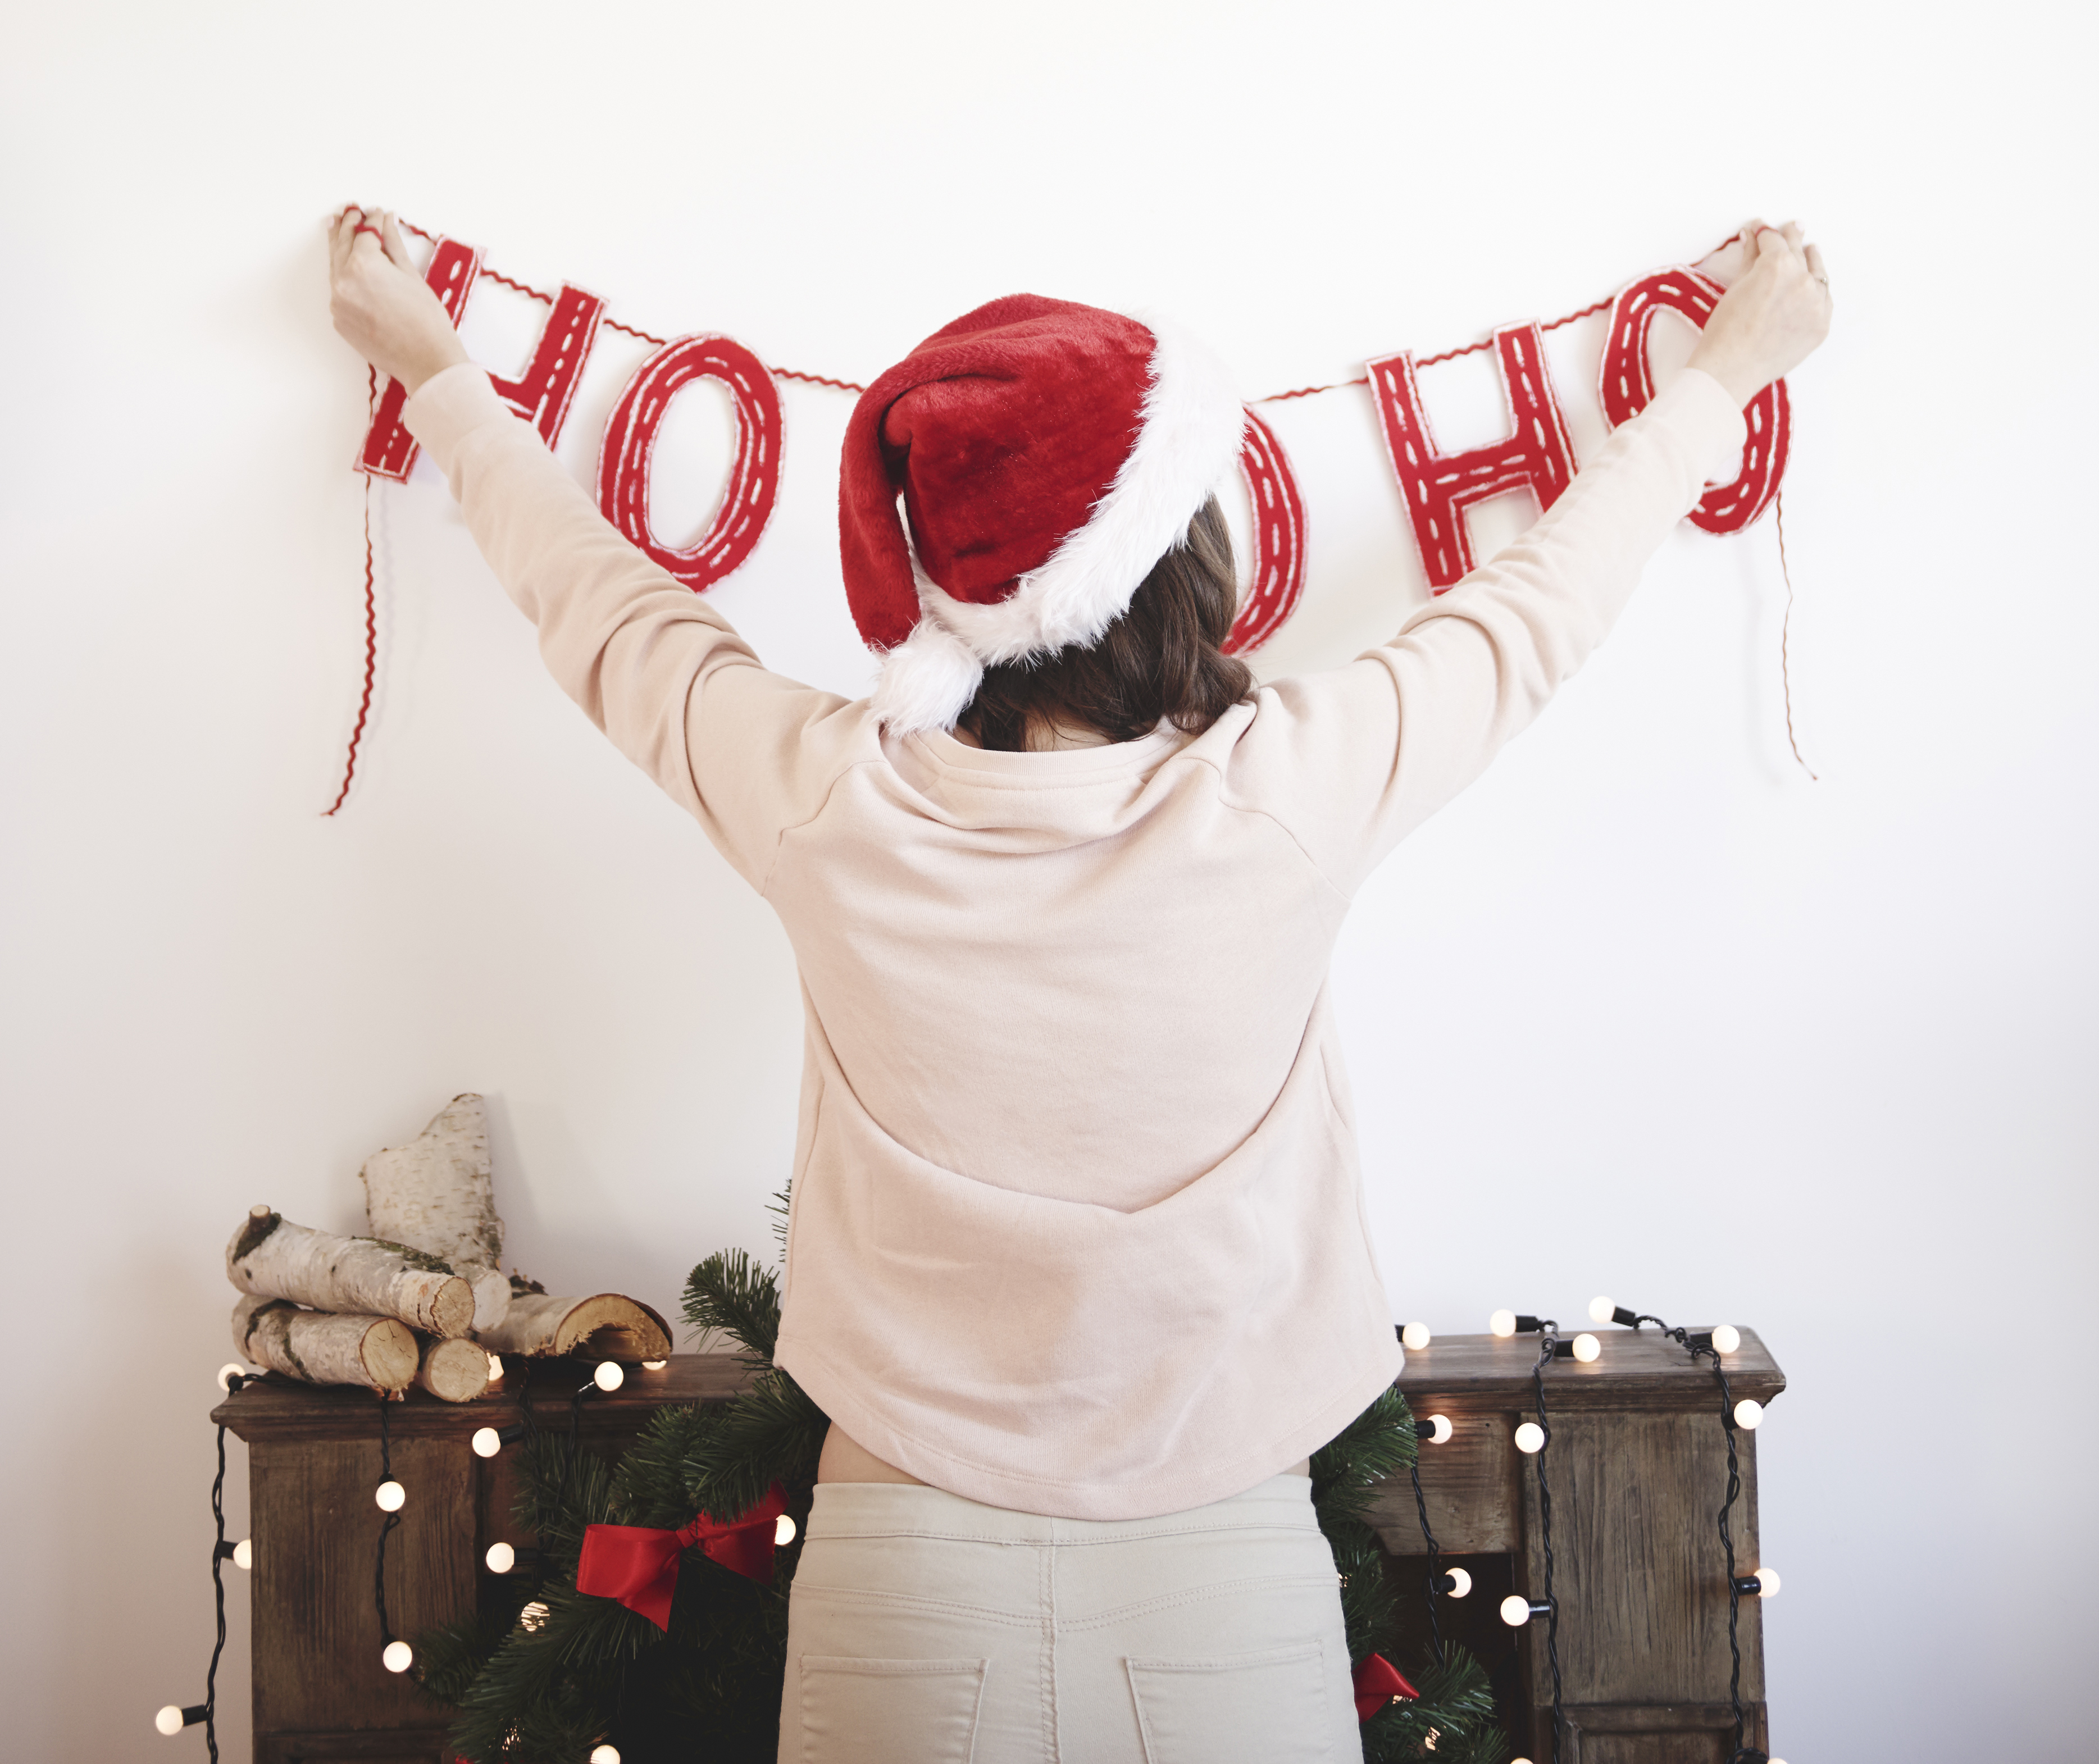 10 fun Christmas traditions to start this year